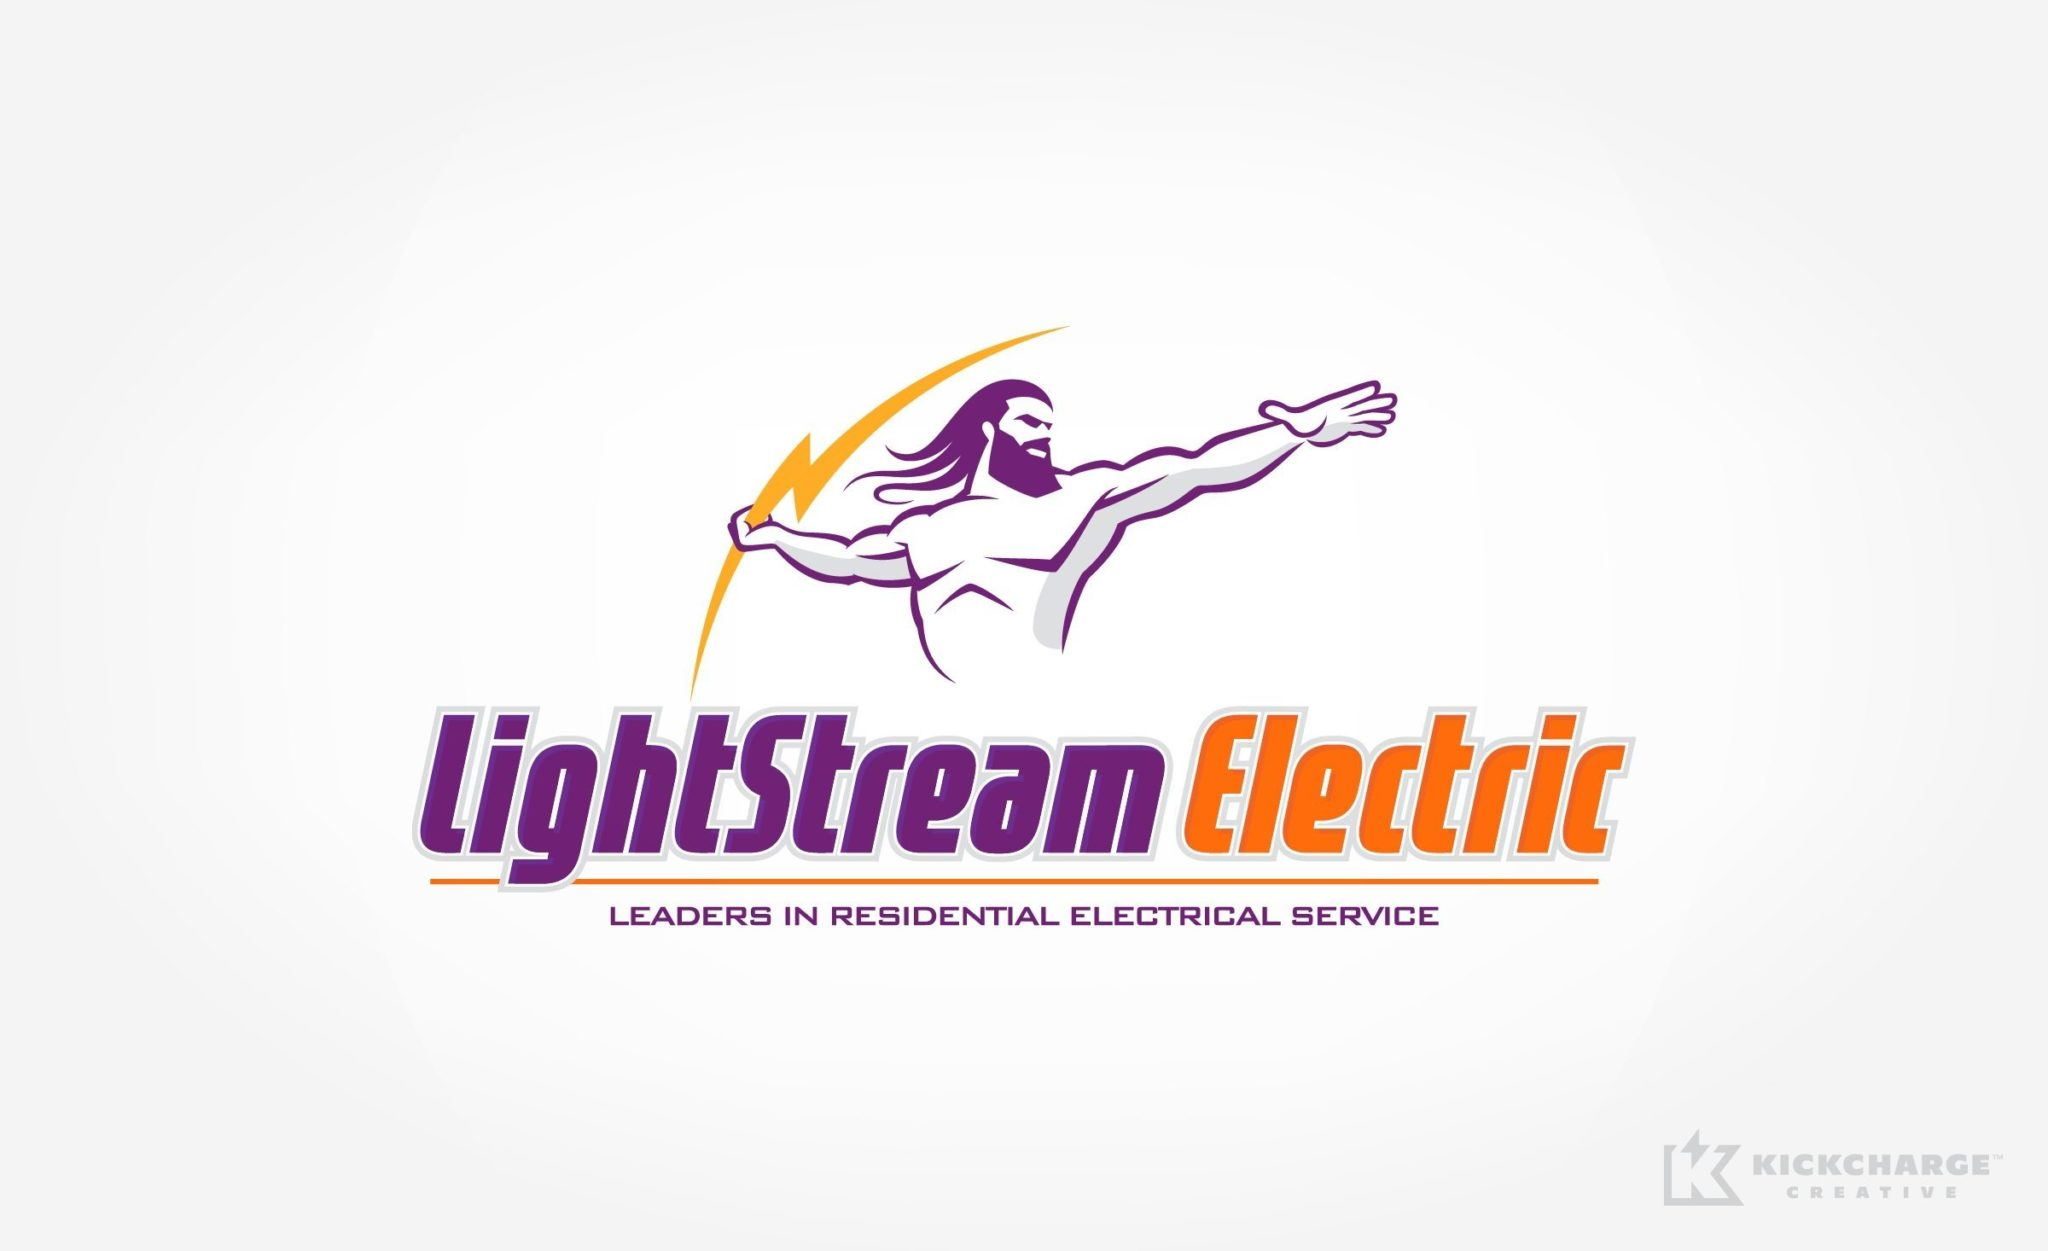 Lightstream Electric